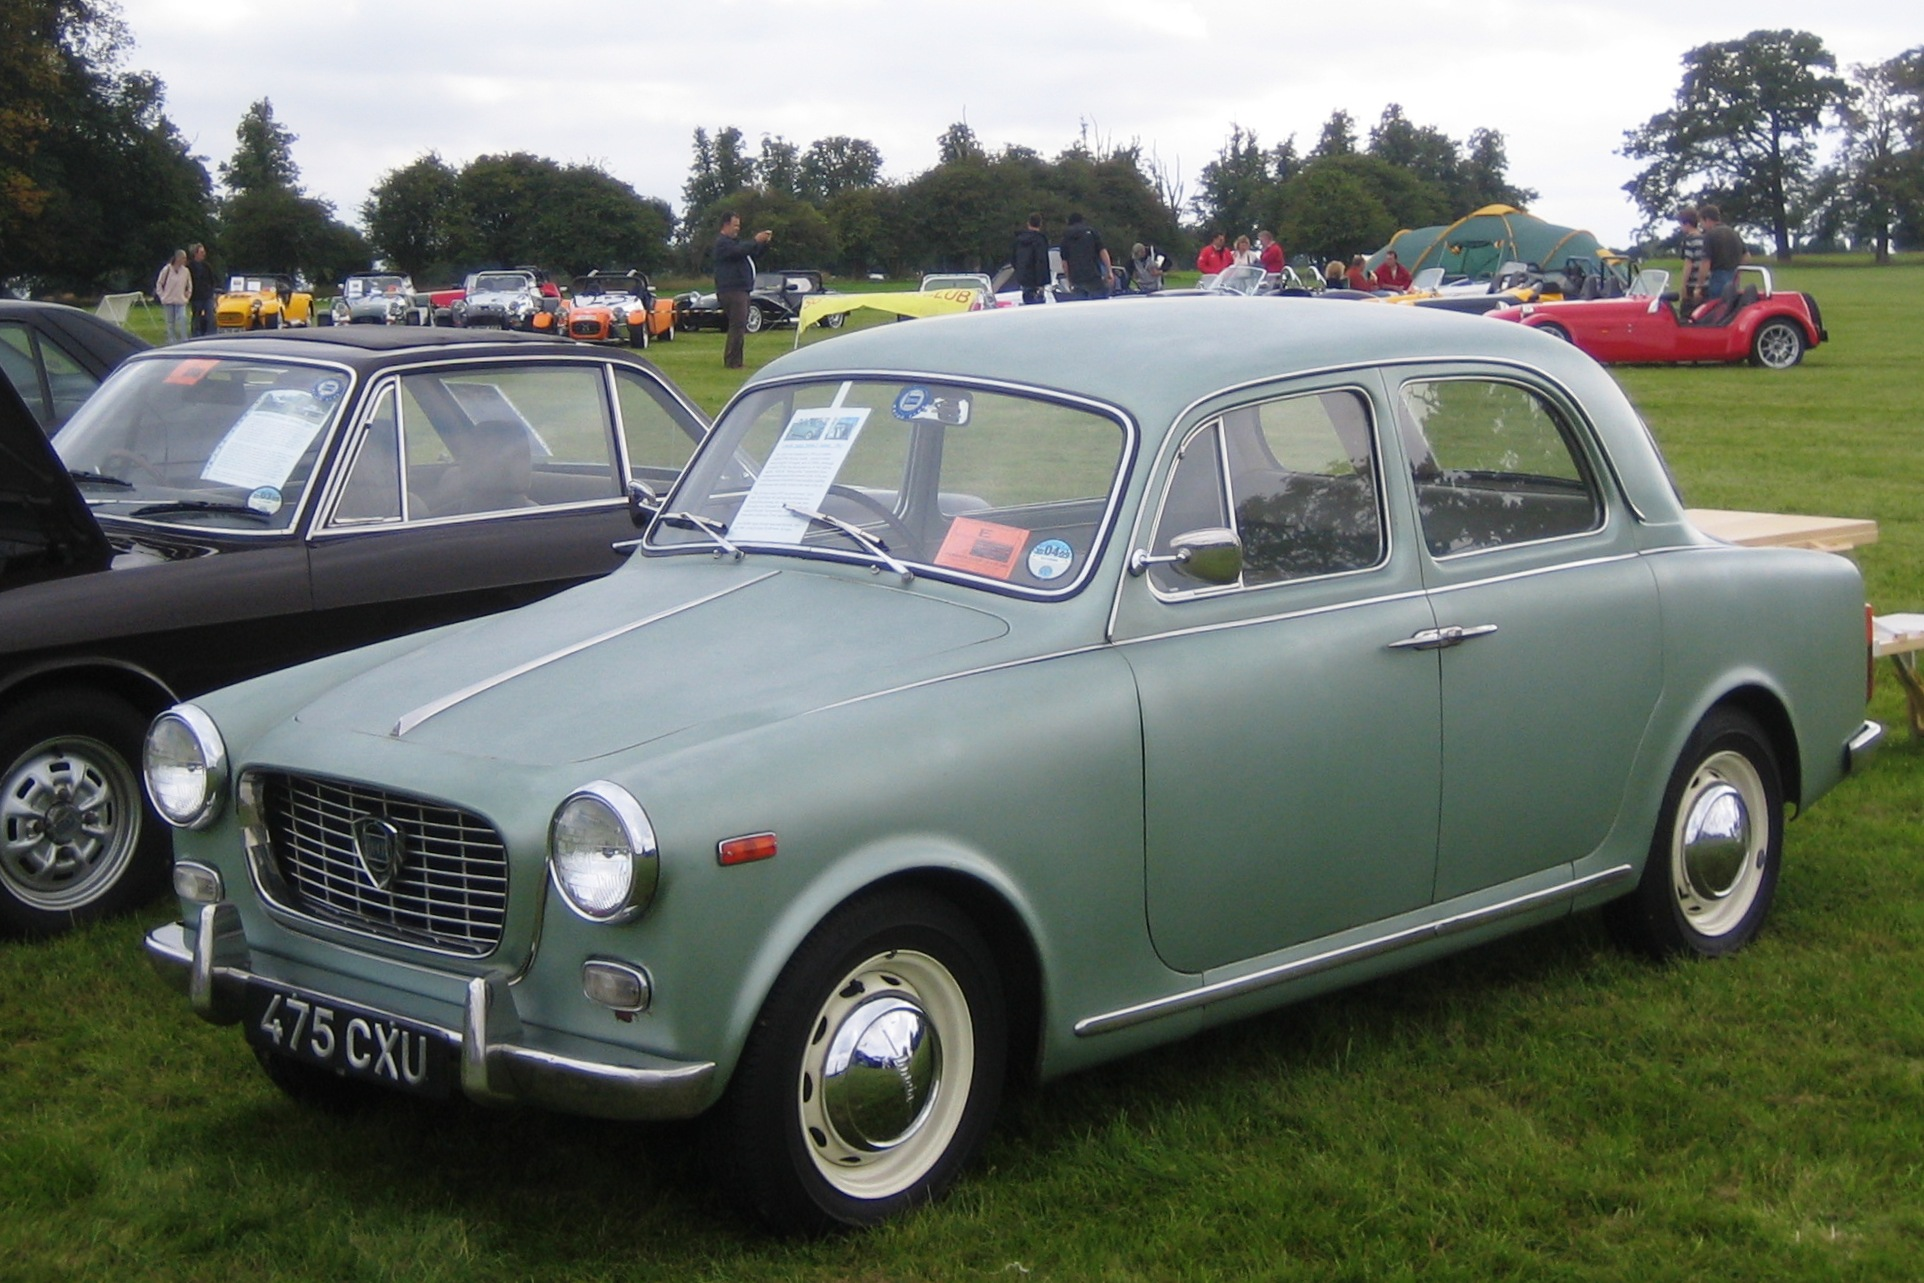 https://upload.wikimedia.org/wikipedia/commons/8/8d/Lancia_Appia_berlina_ca_1960.jpg